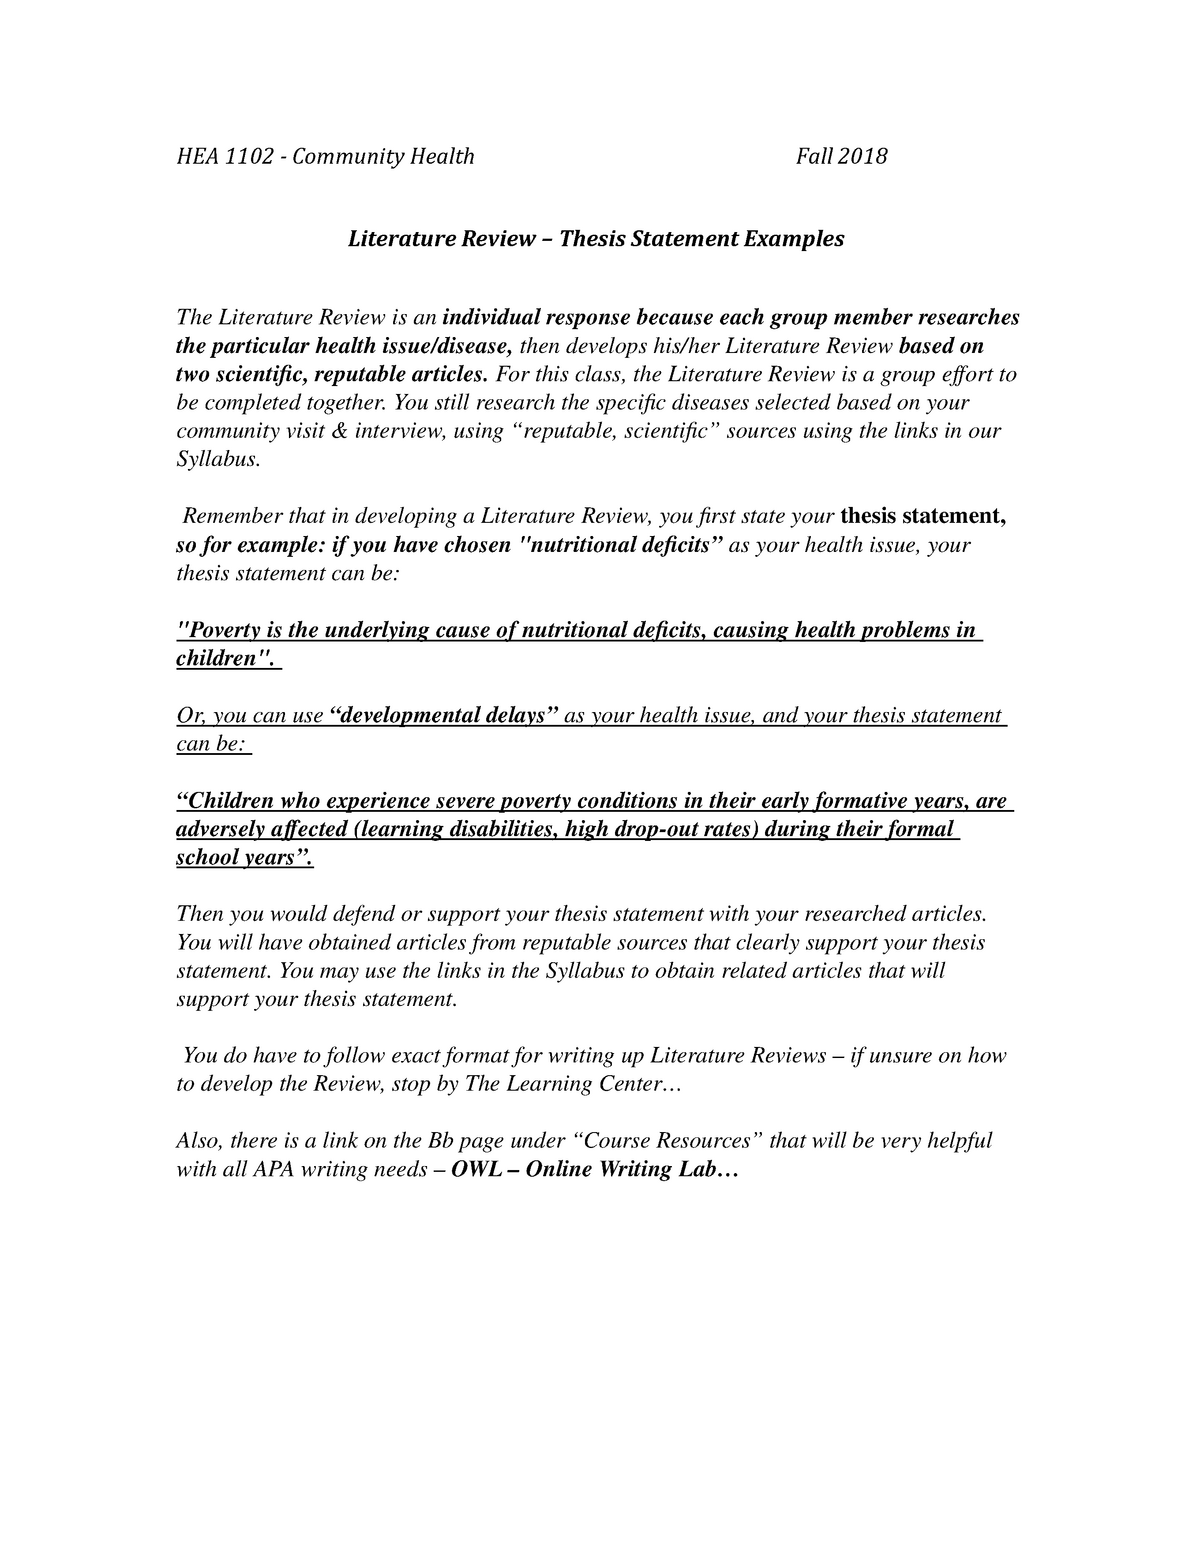 HEA 1102 Community Health Literature Review Thesis Statement Examples -  StuDocu